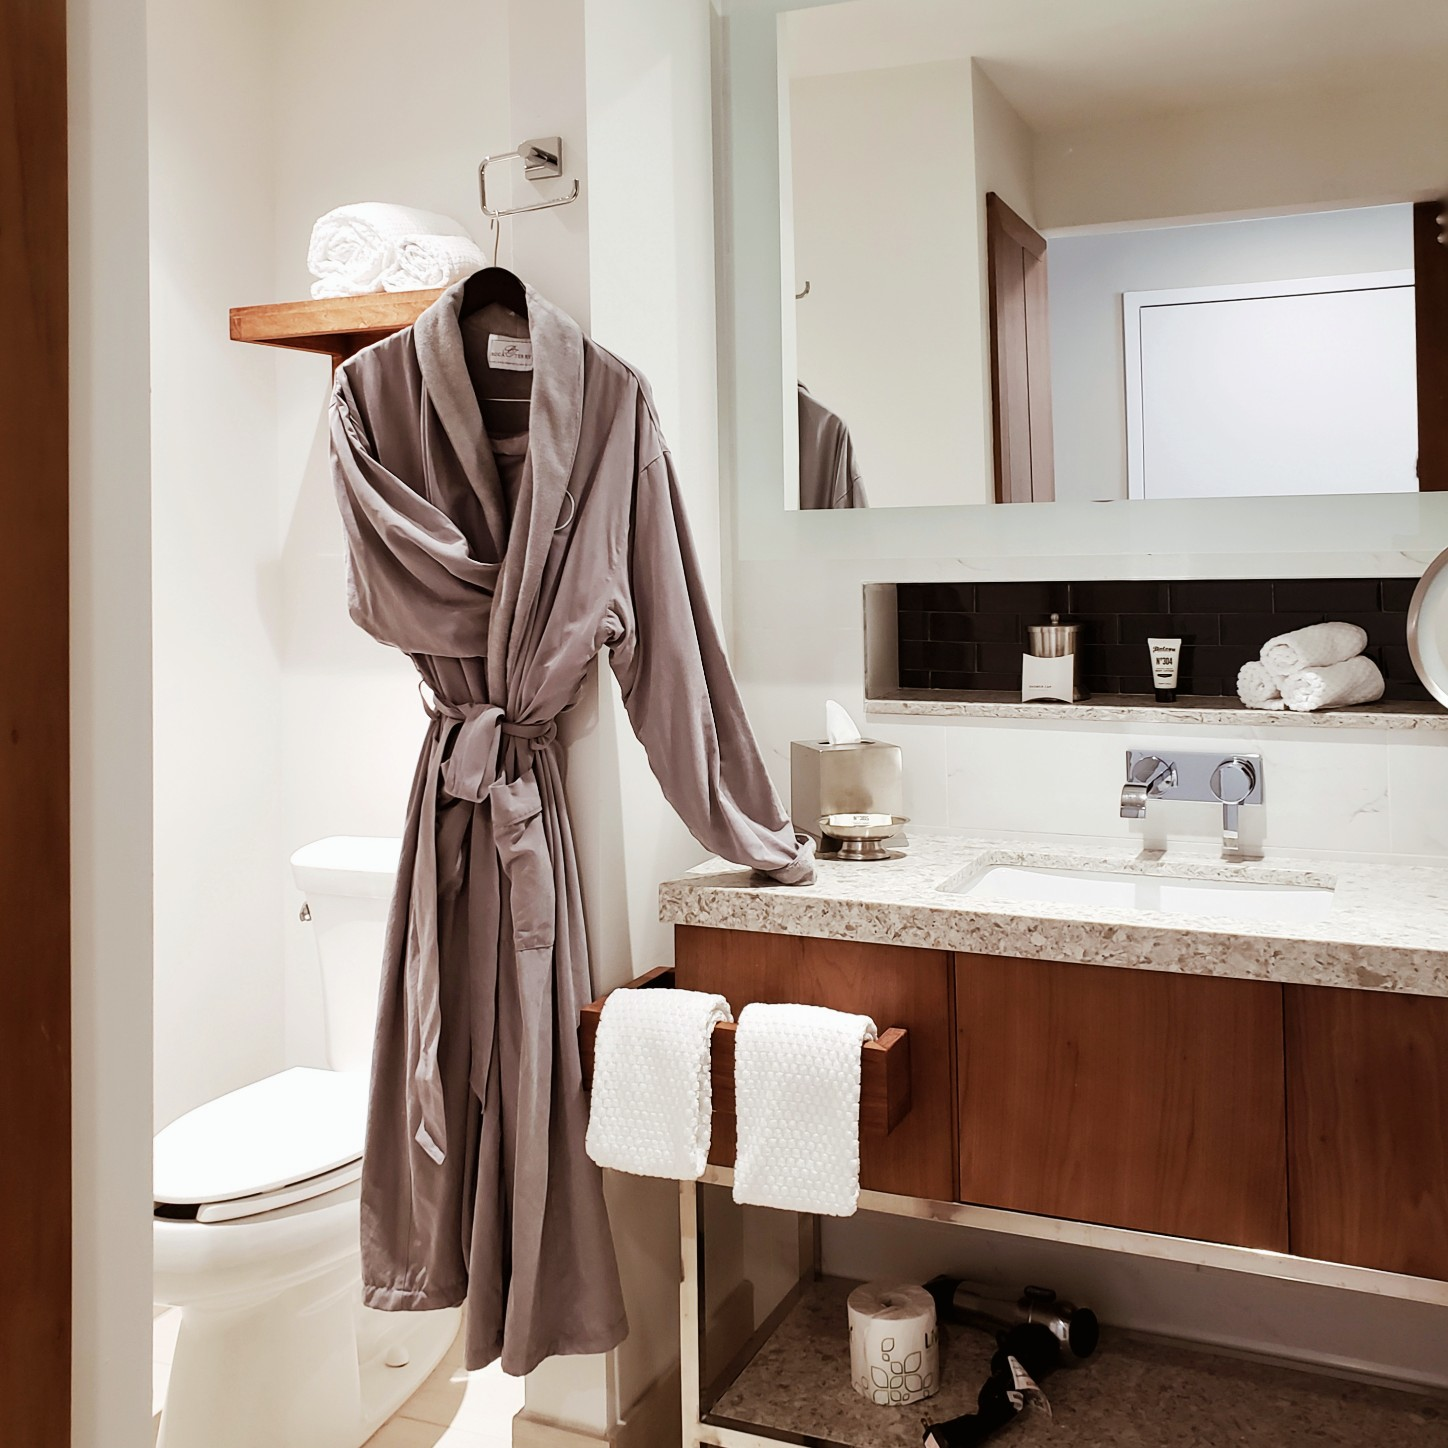 Gorgeous grey soft bathrobe at Circ Hotel